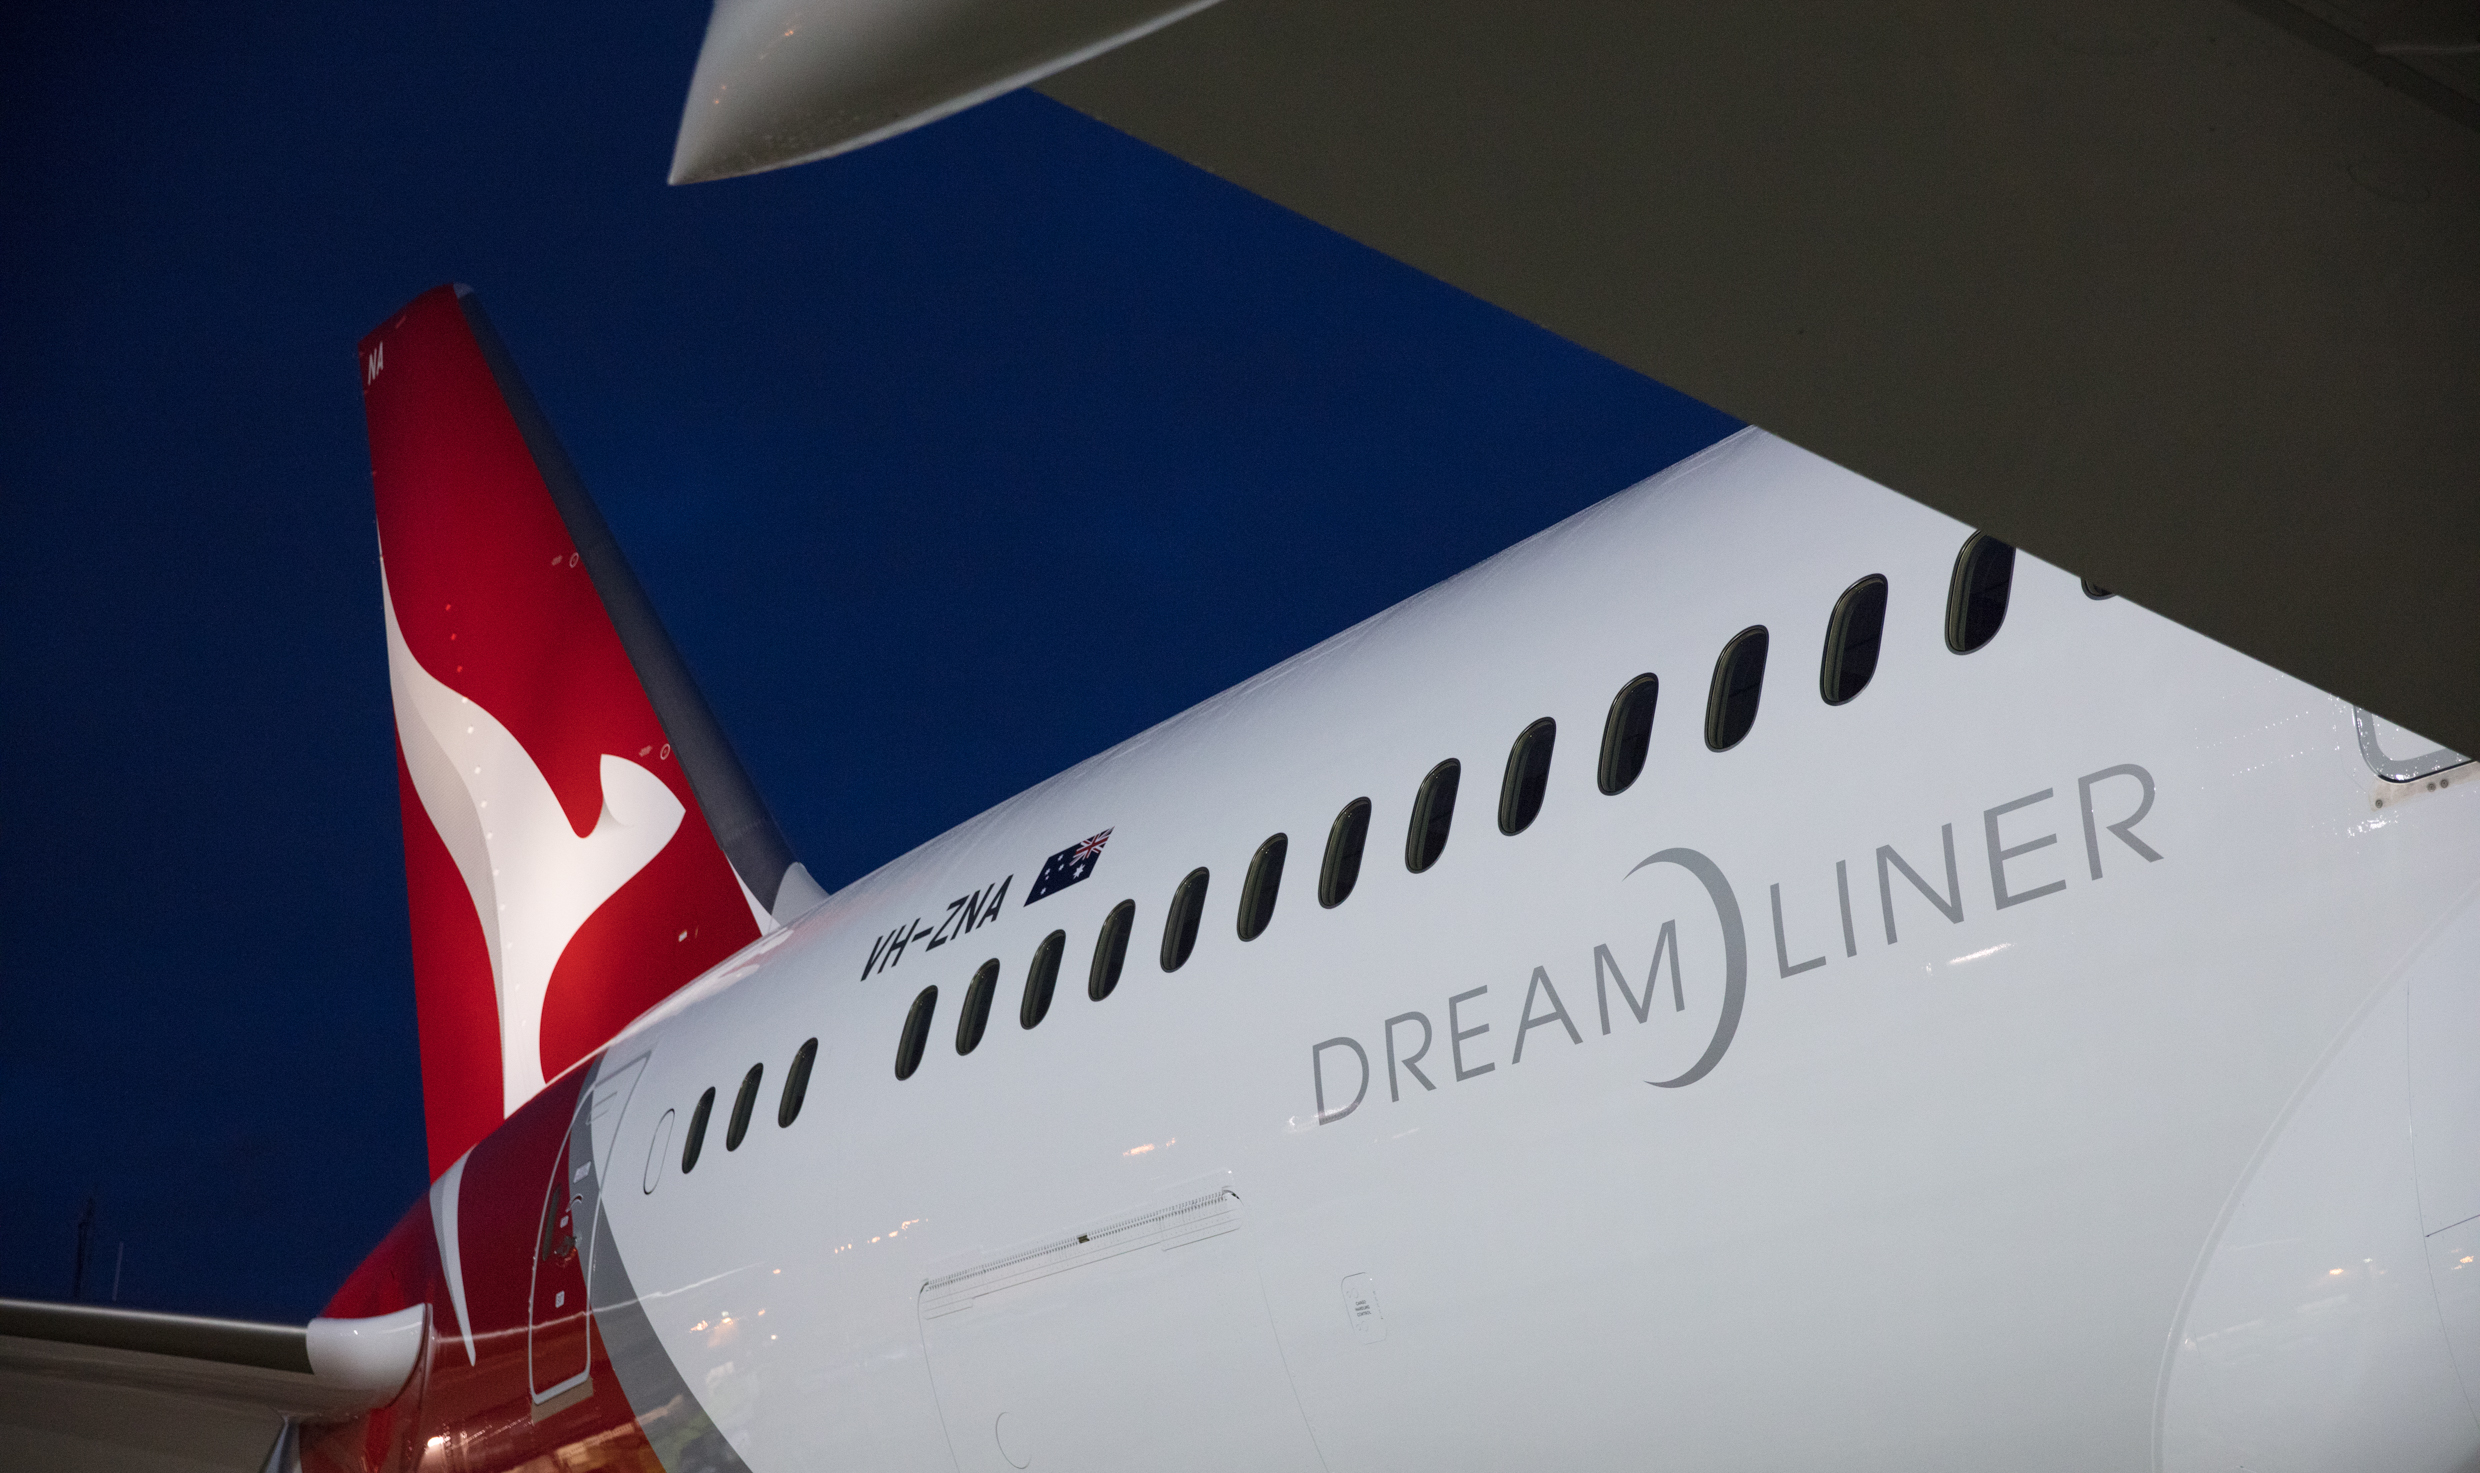 New livery for the new aeroplane